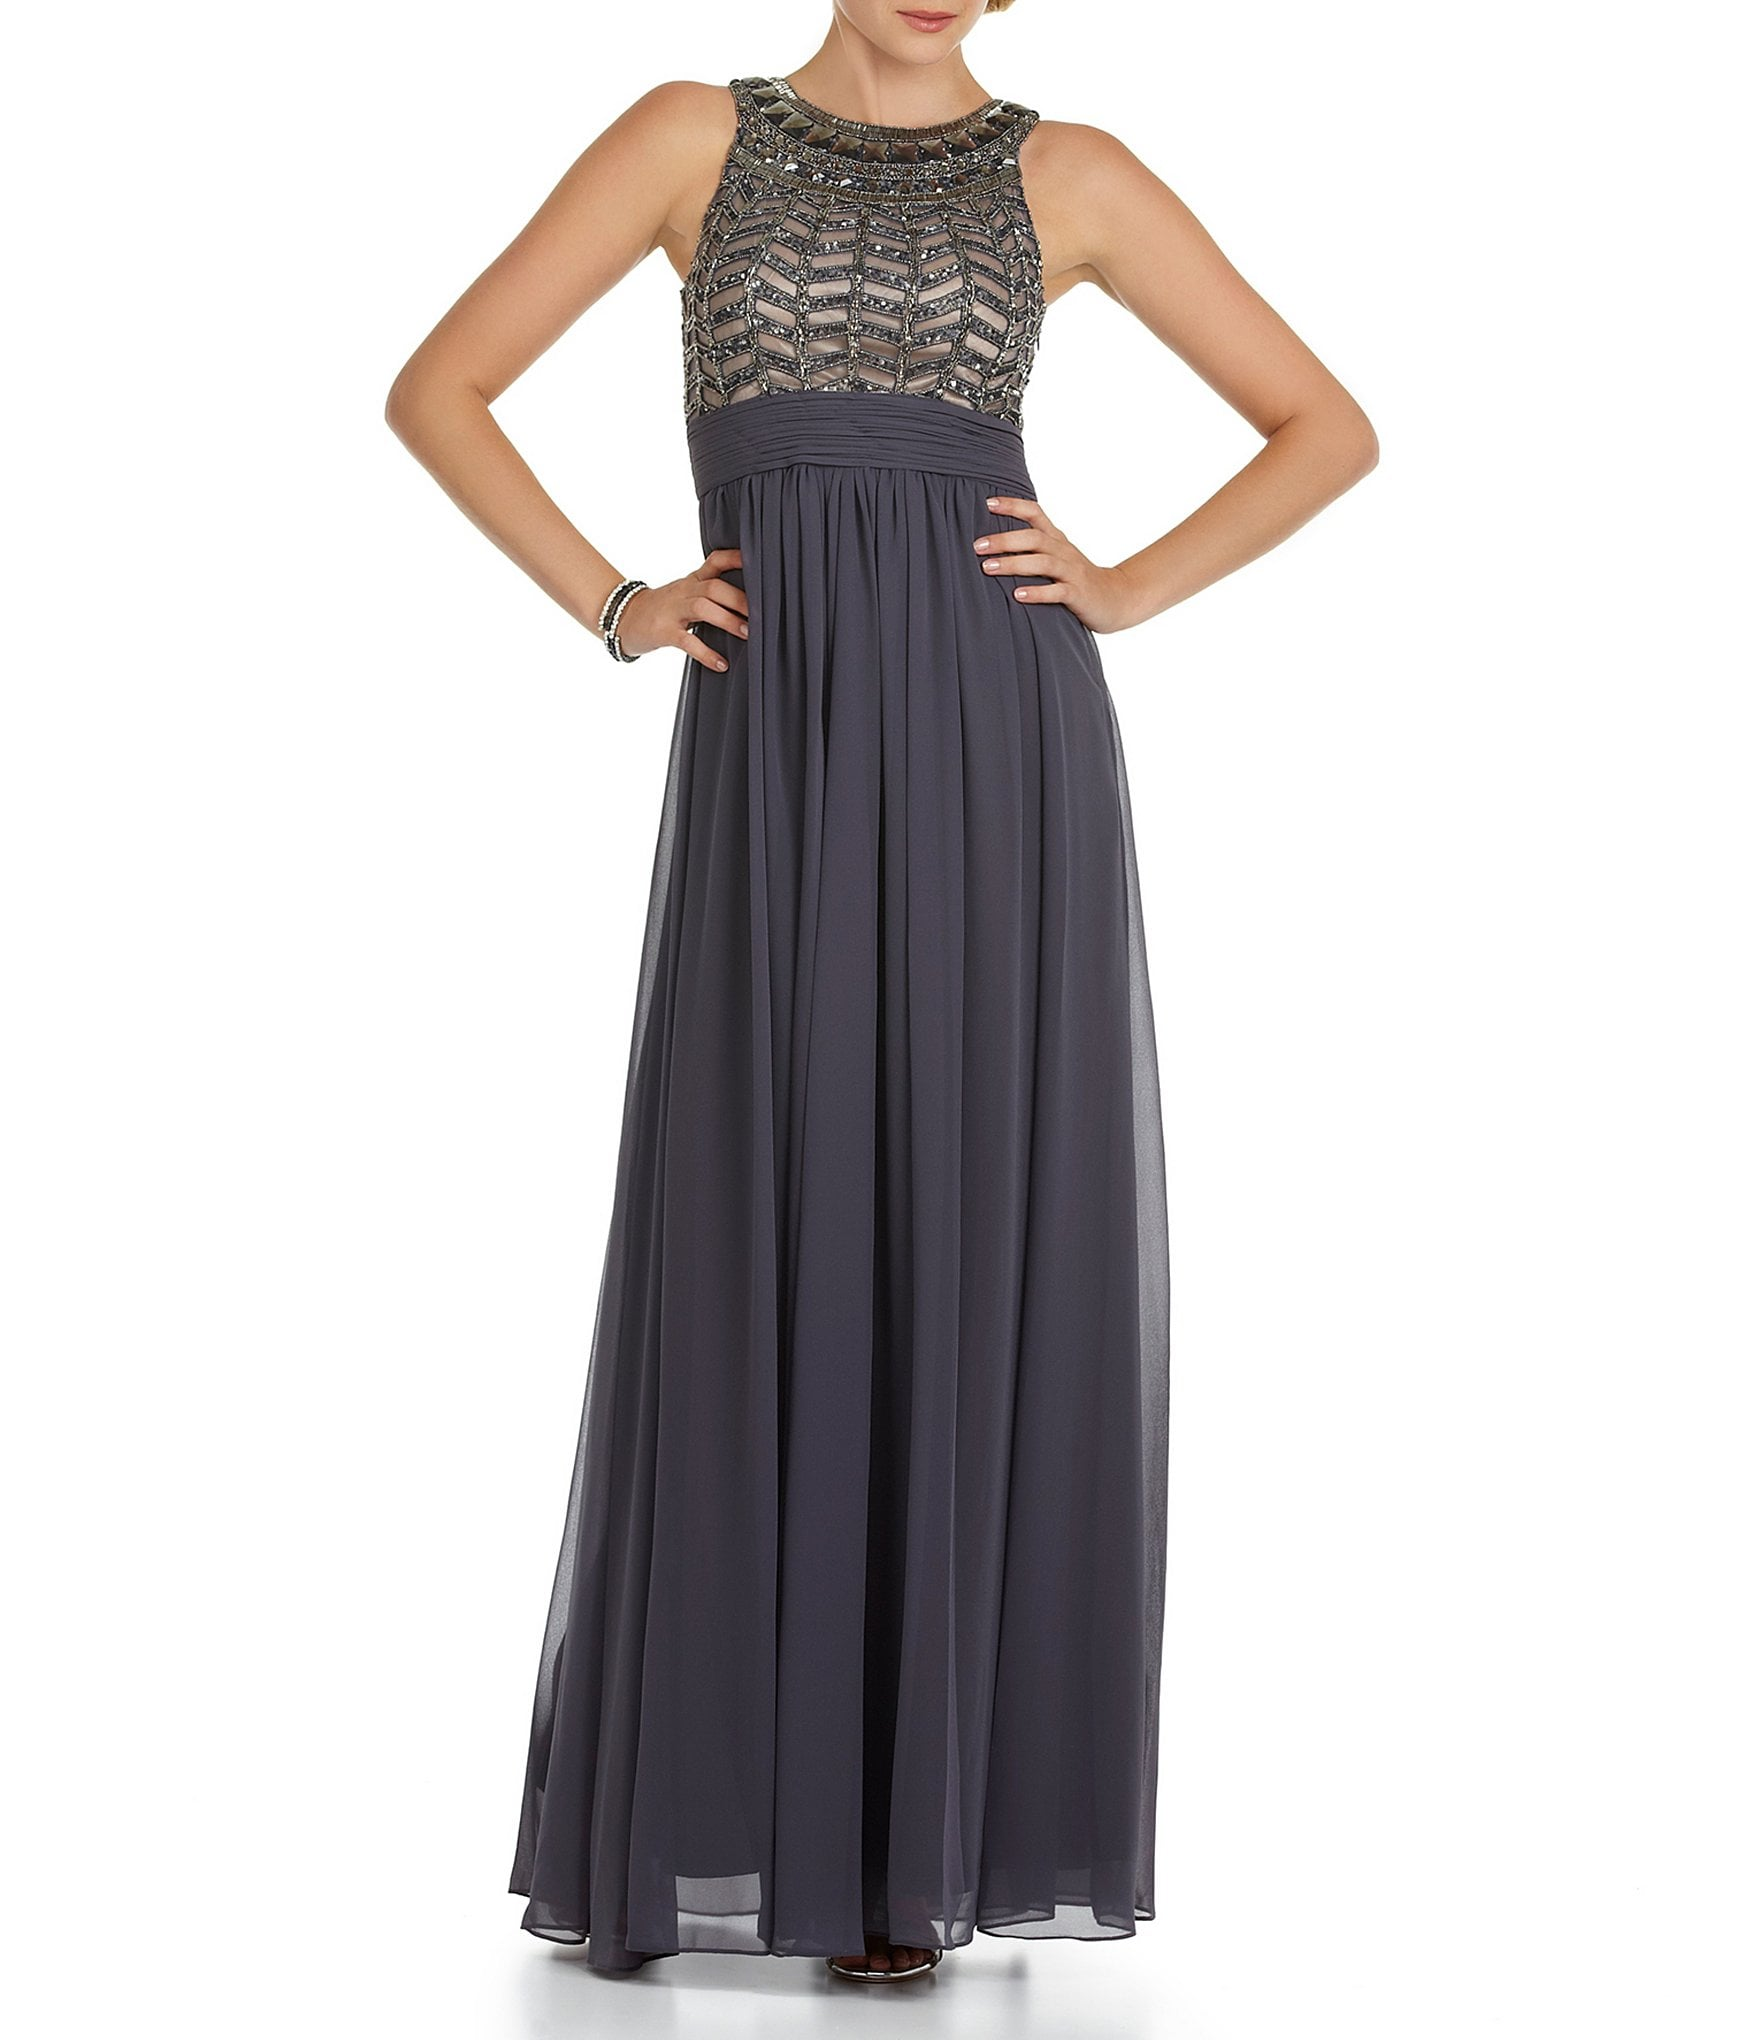 7f66ff90012 grey dress  The Wedding Shop